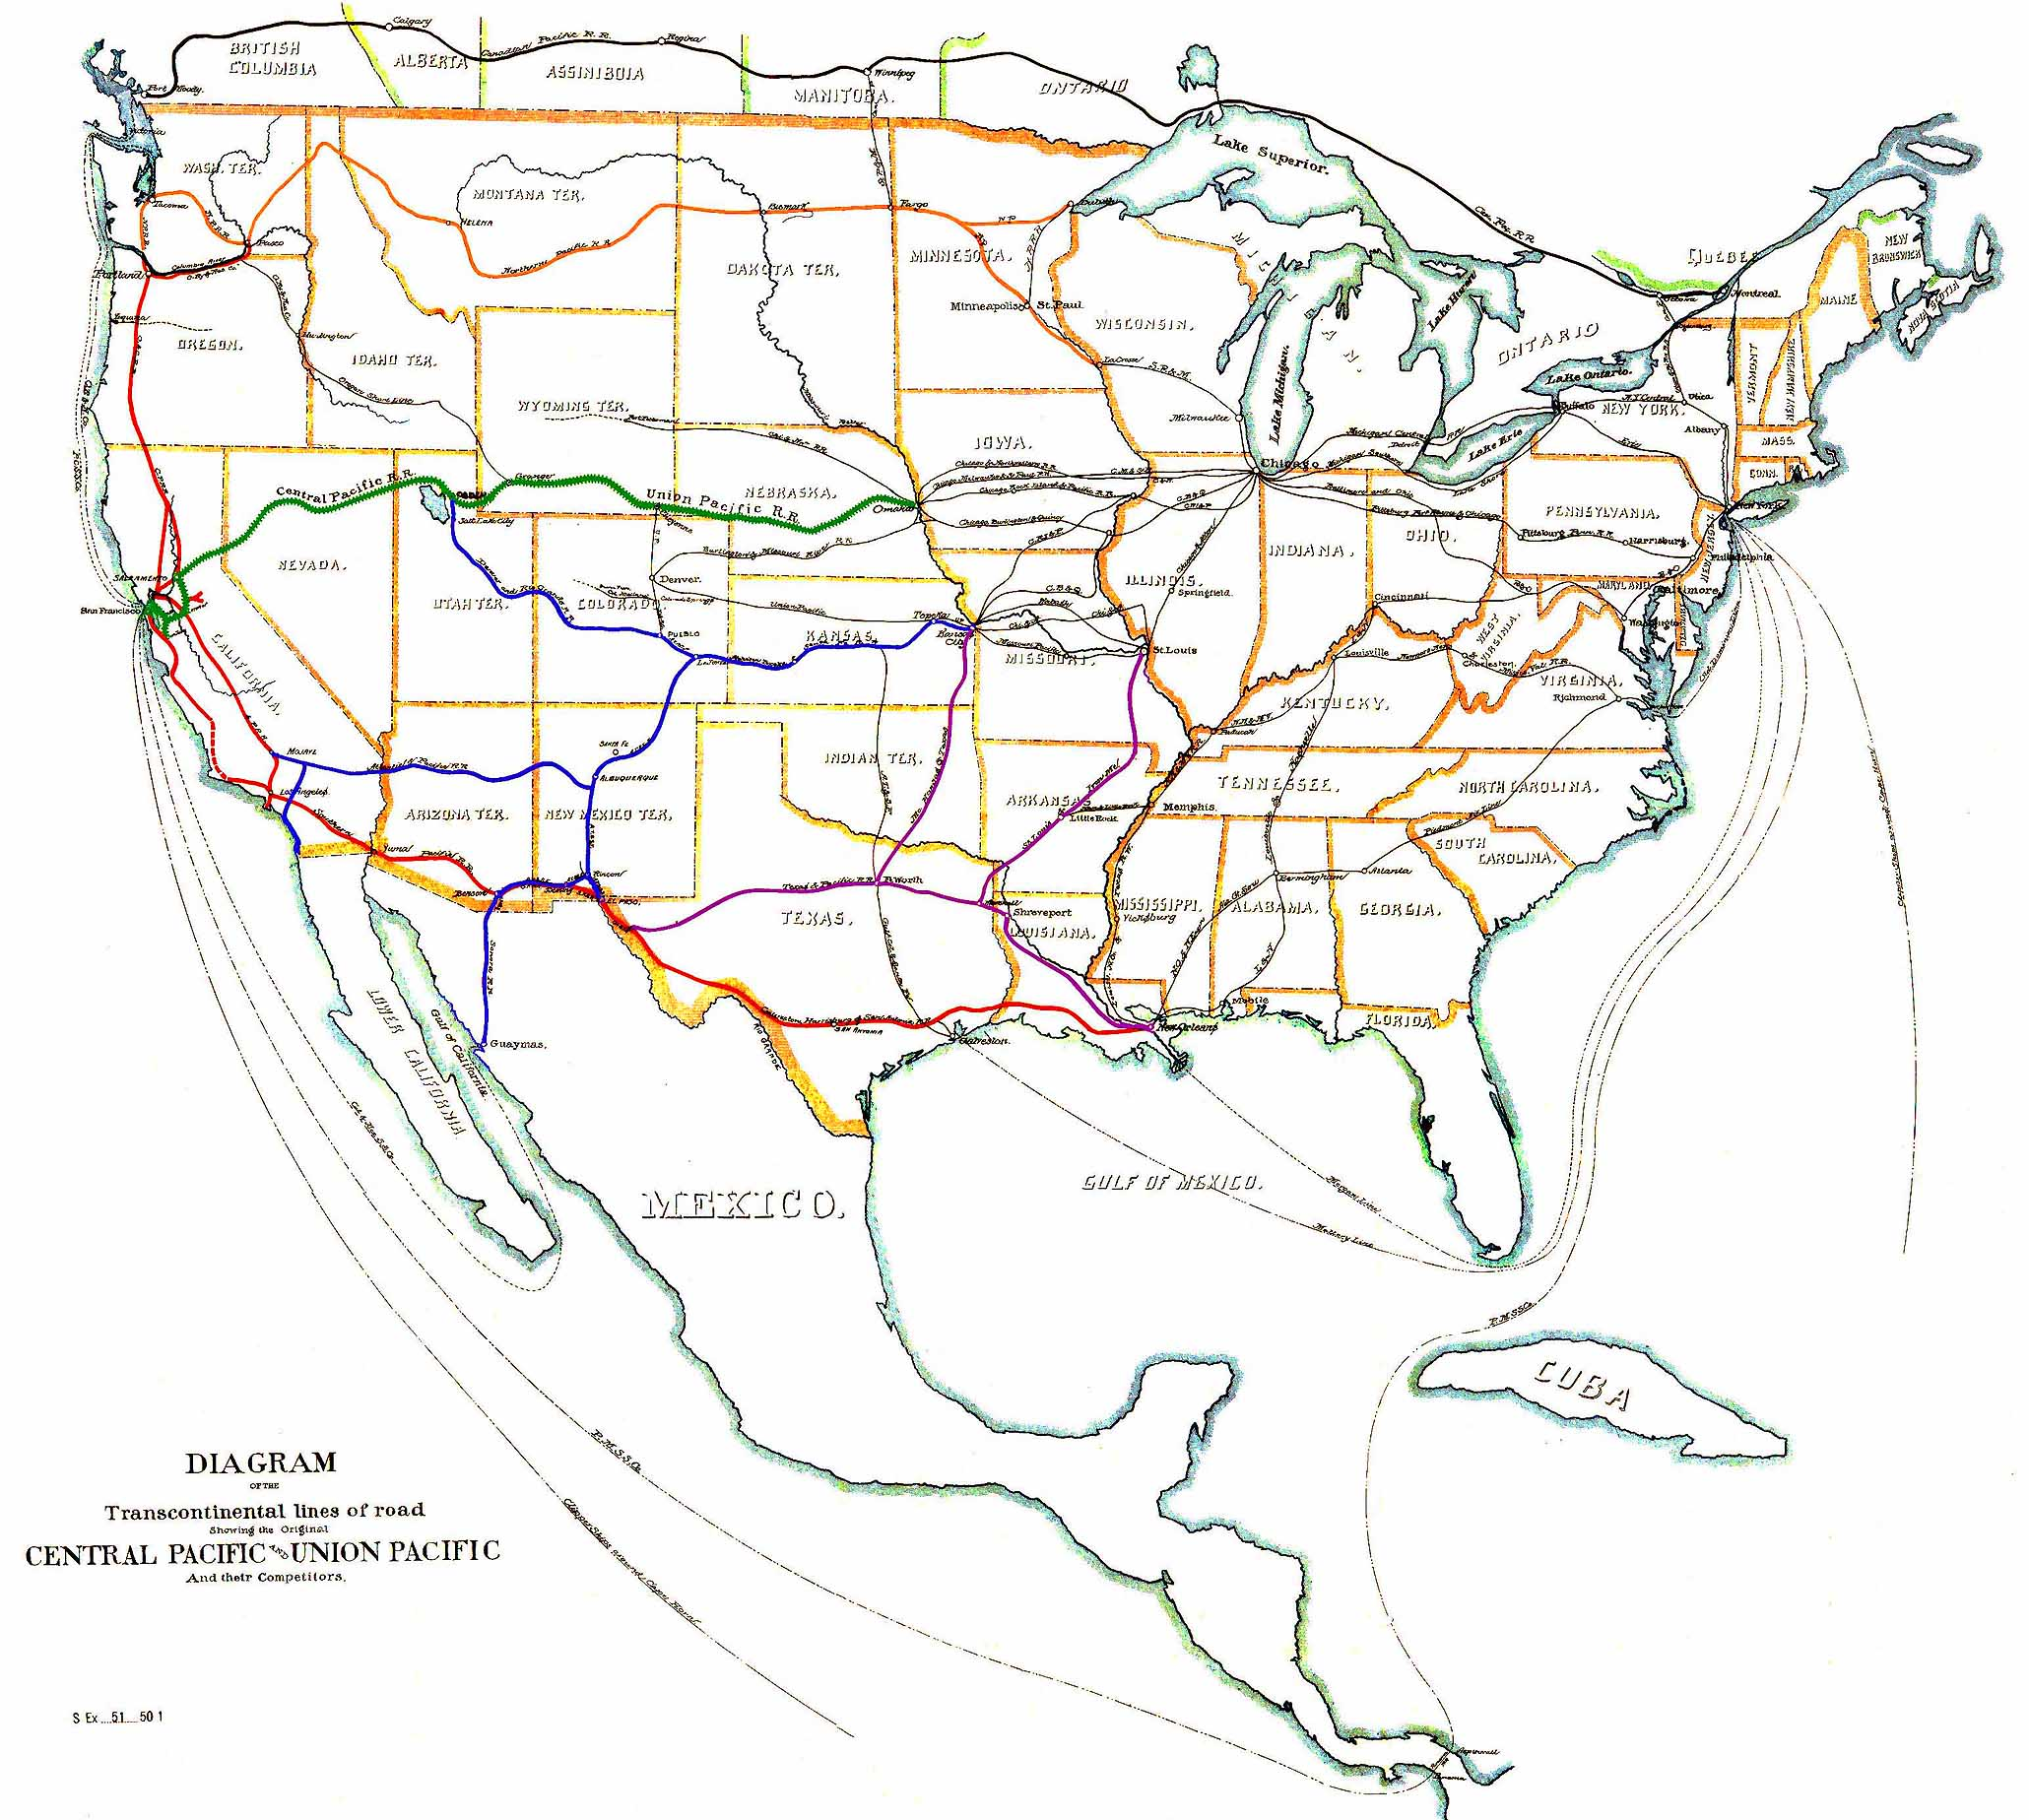 FileUS Transcontinental Railroads 1887jpg Wikimedia Commons